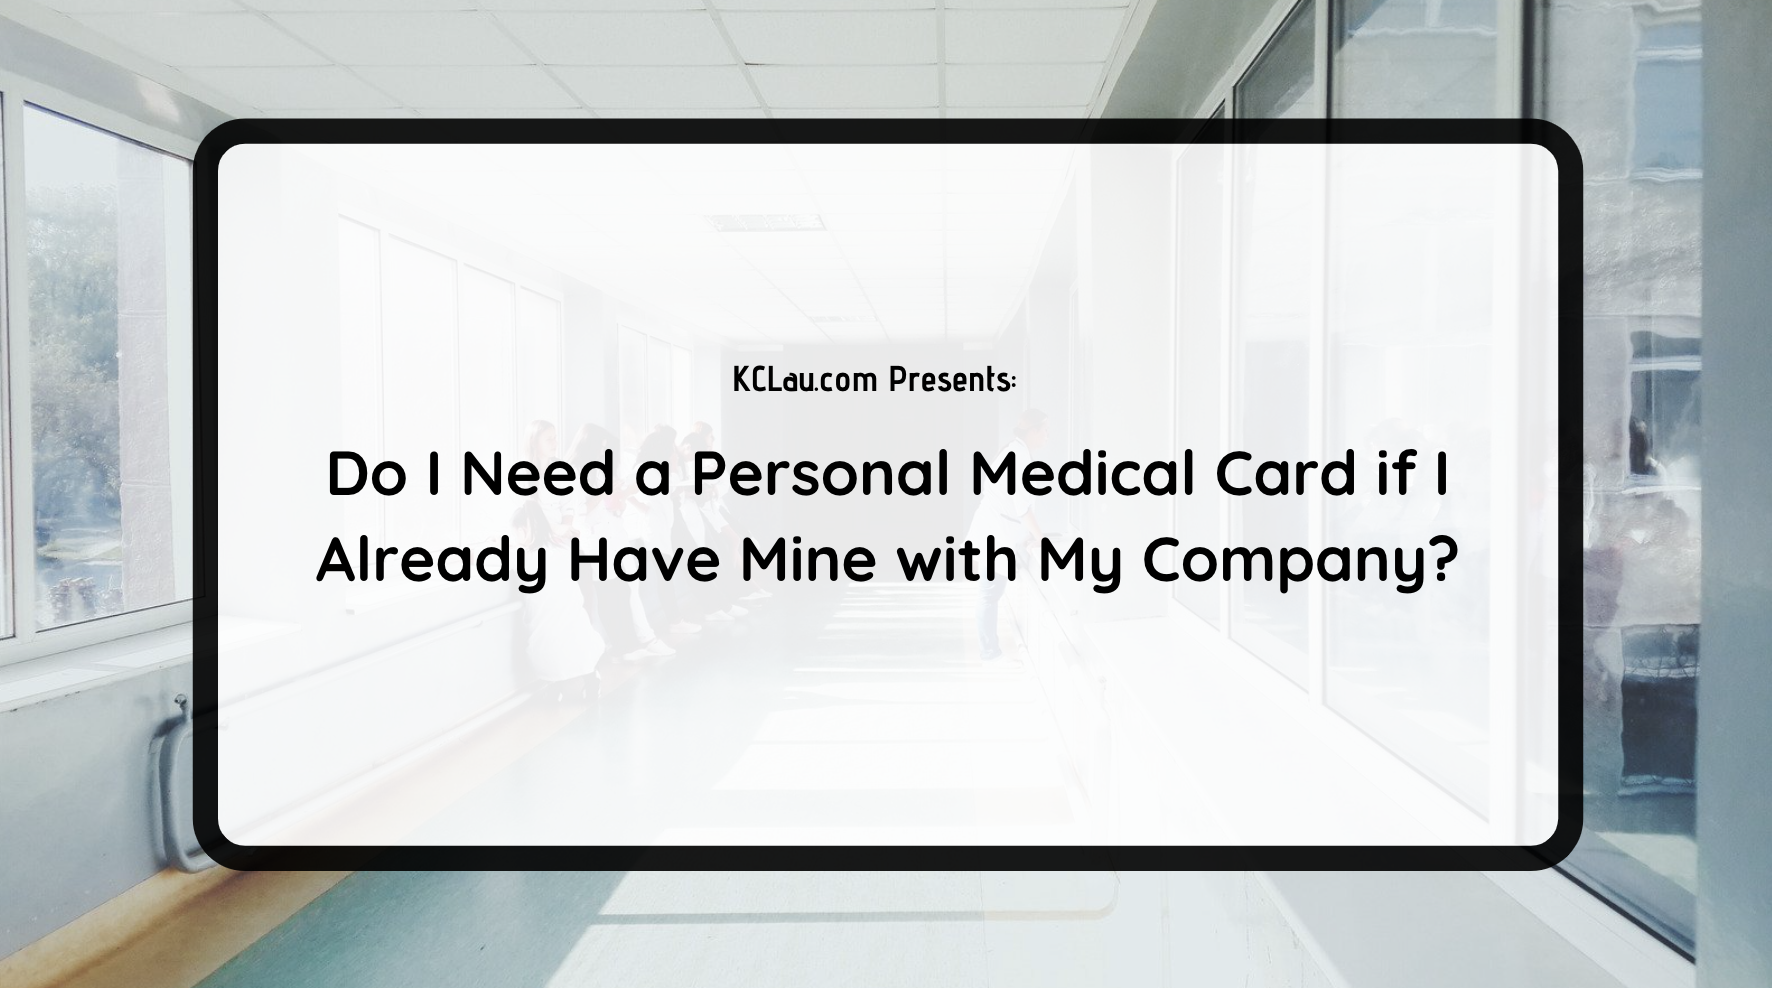 Do I Need a Personal Medical Card if I Already Have Mine with My Company?